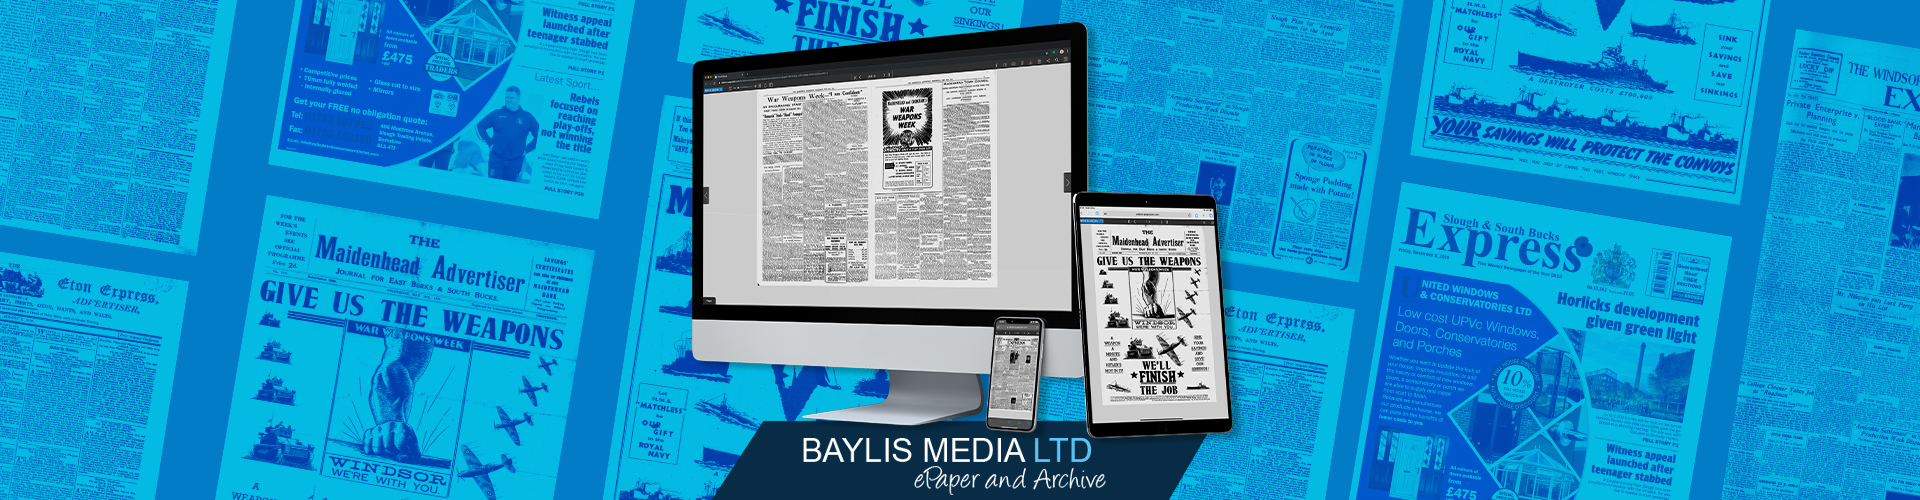 Image of Baylis Media Ltd Launch a 200-Year Digital Archive with PageSuite